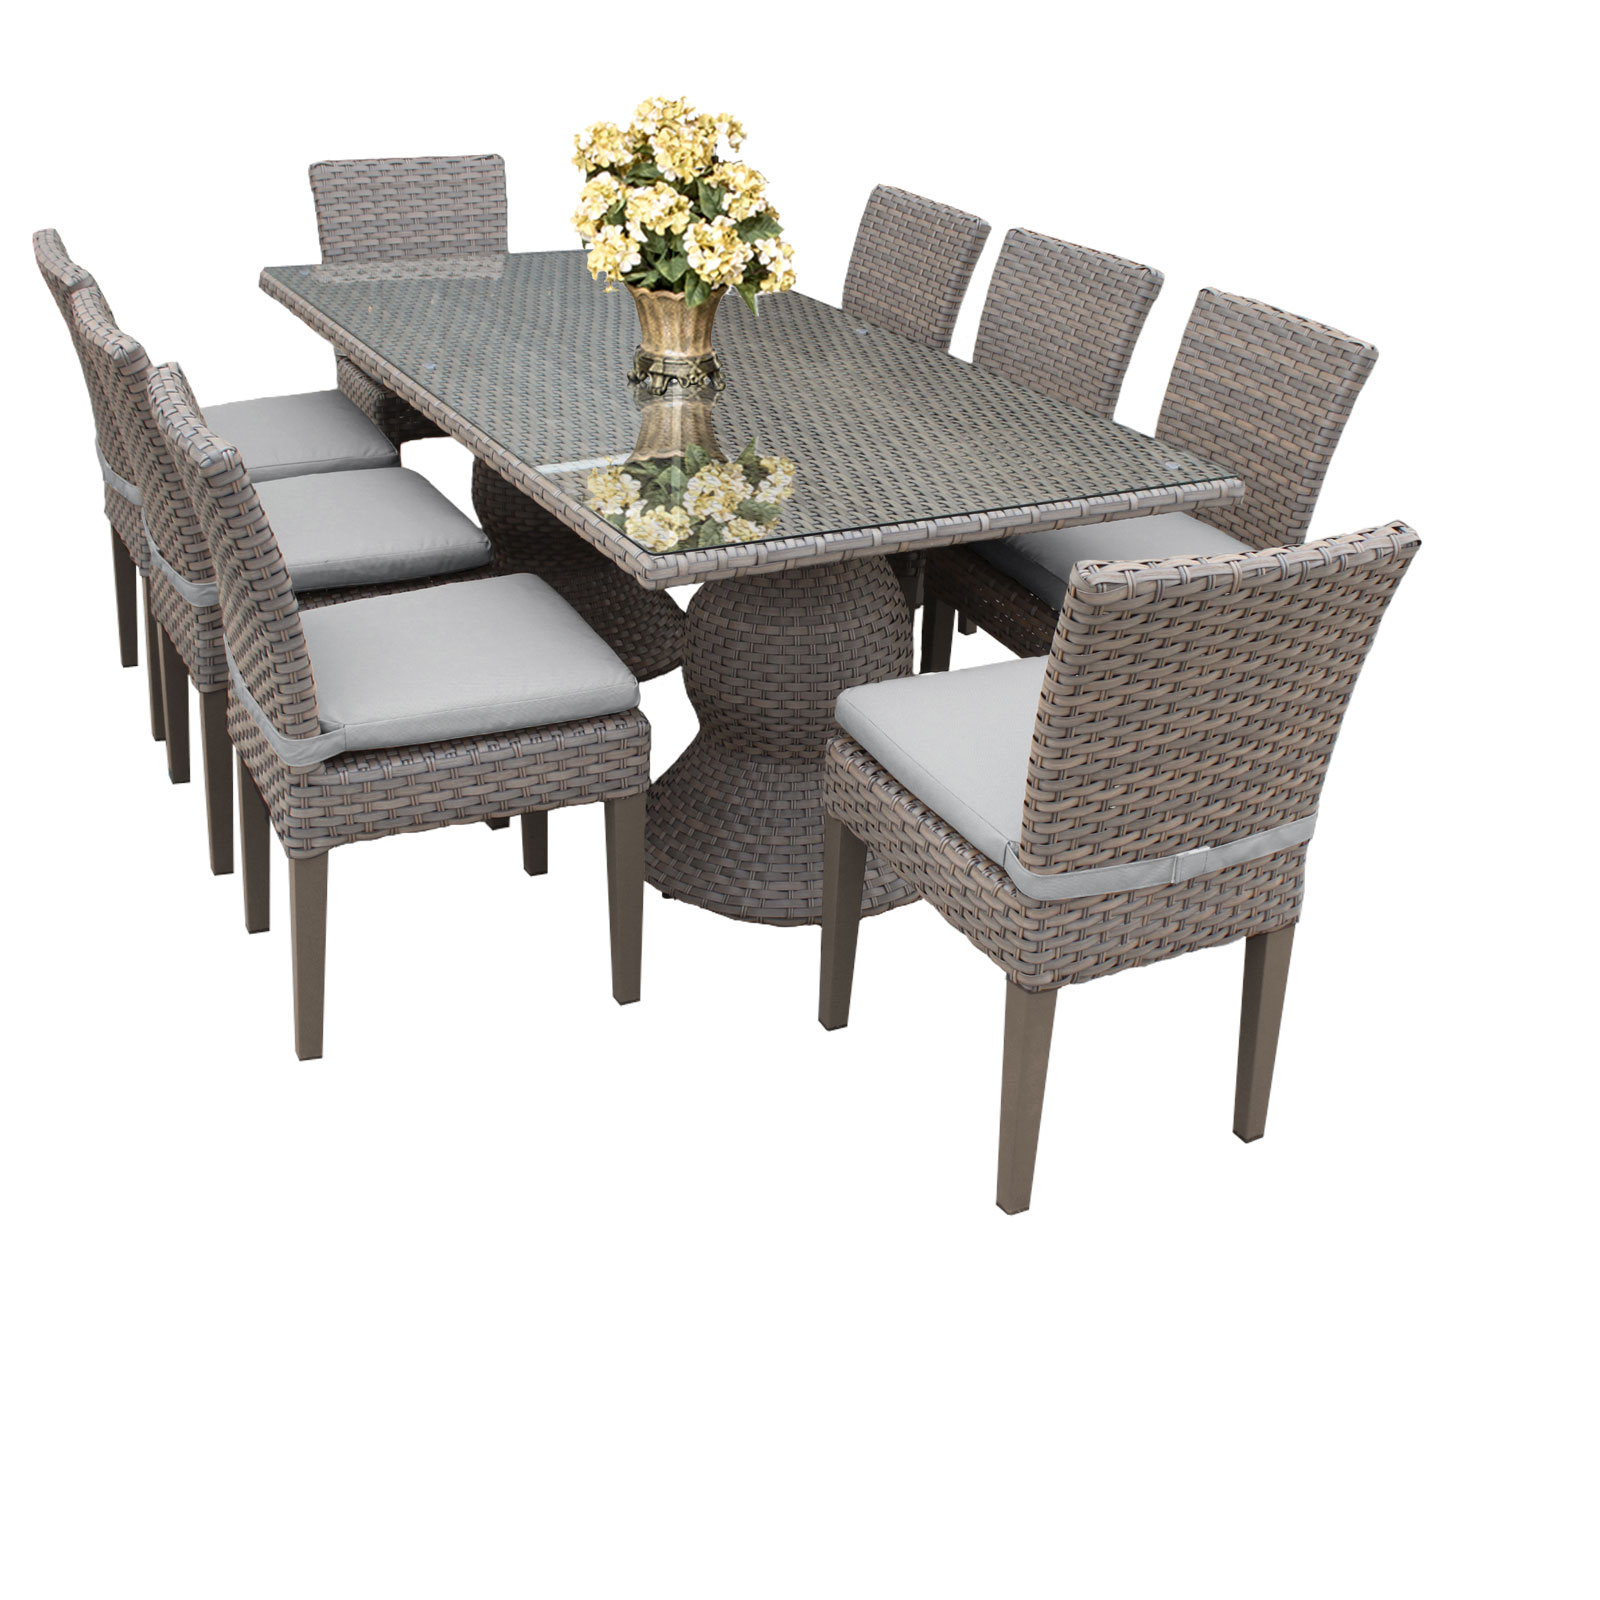 Harmony Rectangular Outdoor Patio Dining Table With 8 Chairs